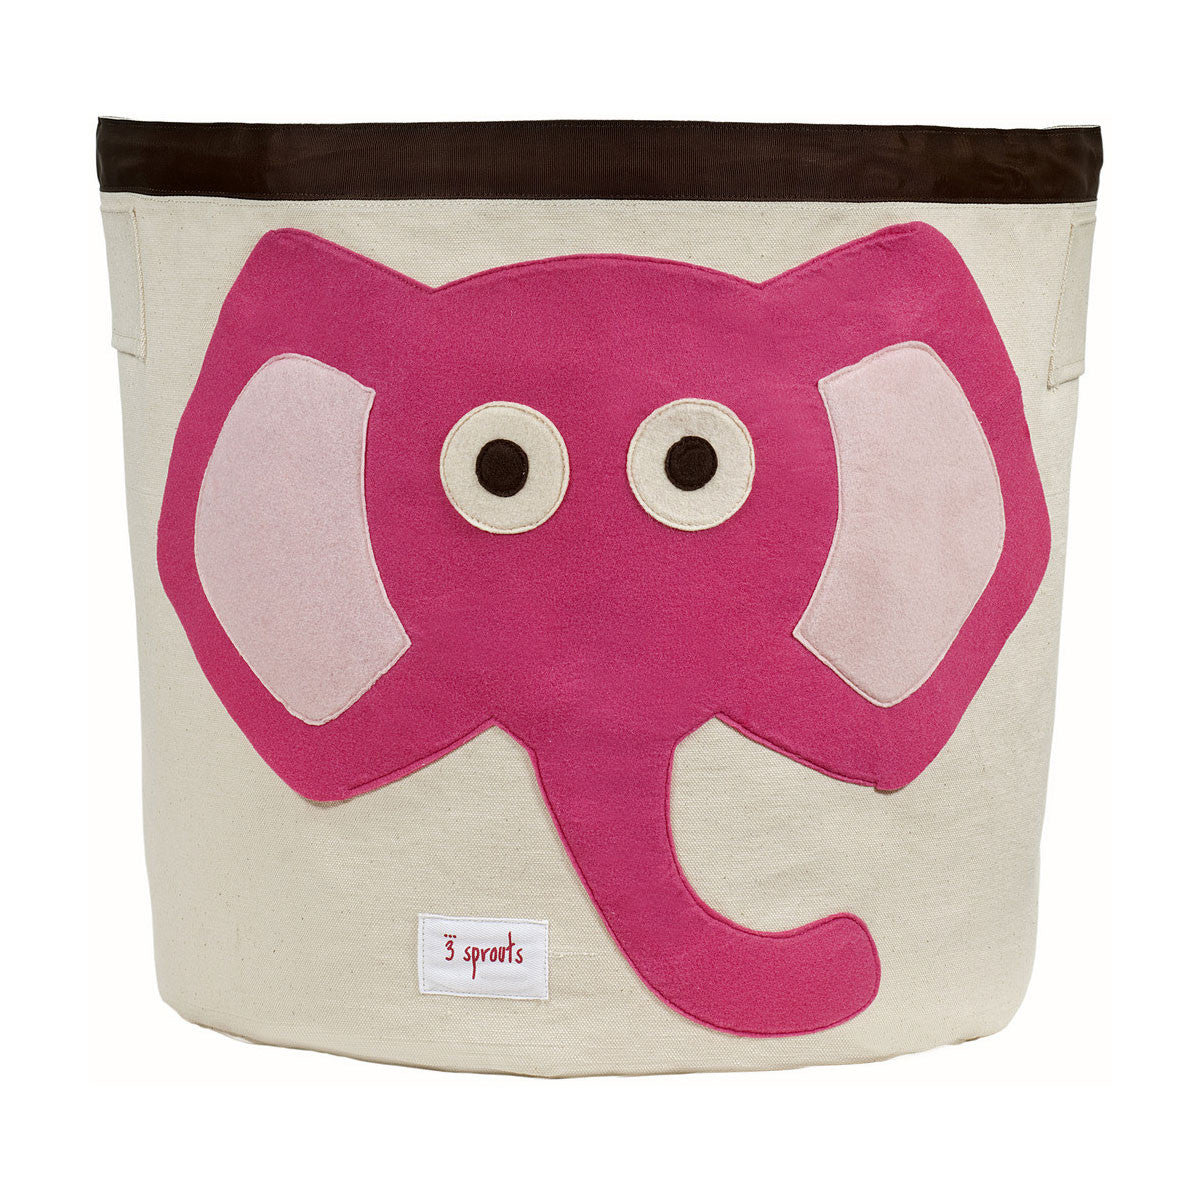 3 Sprouts Storage Bin Pink Elephant - DarlingBaby